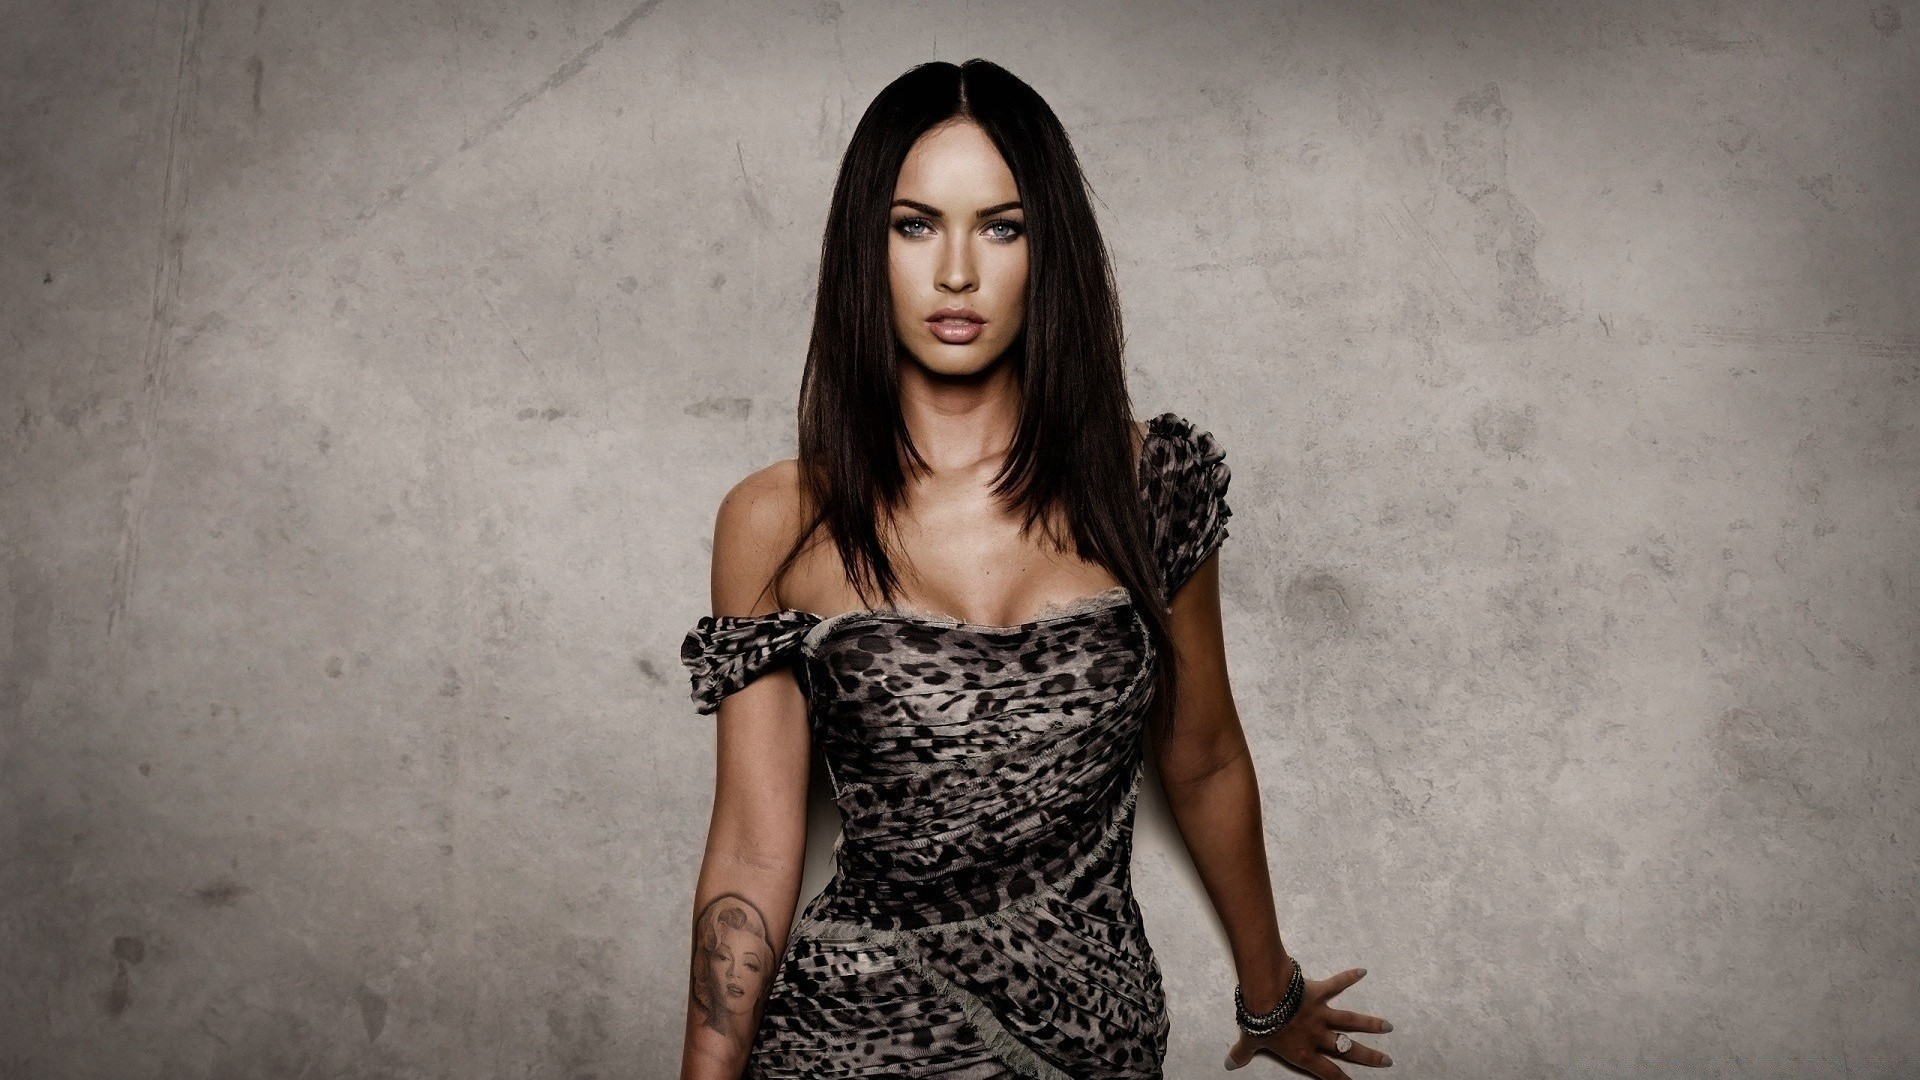 Megan fox every girl video #10